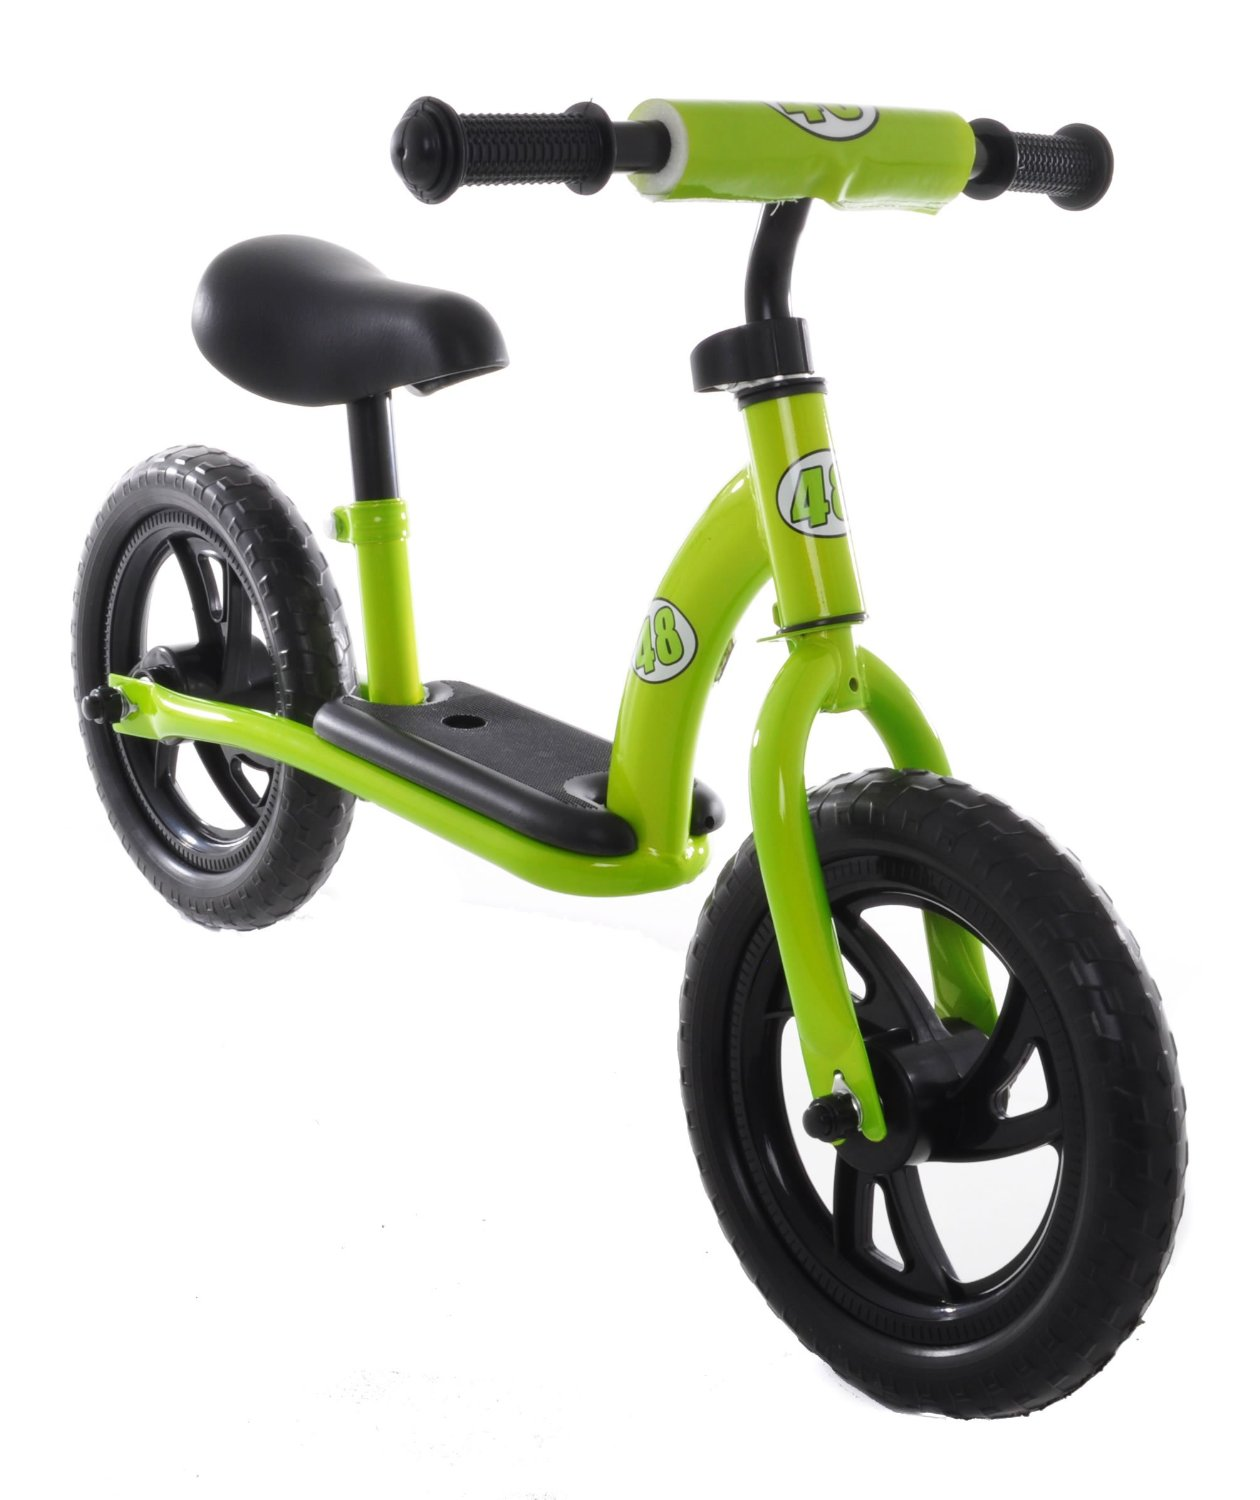 Vilano Ripper Balance Bike